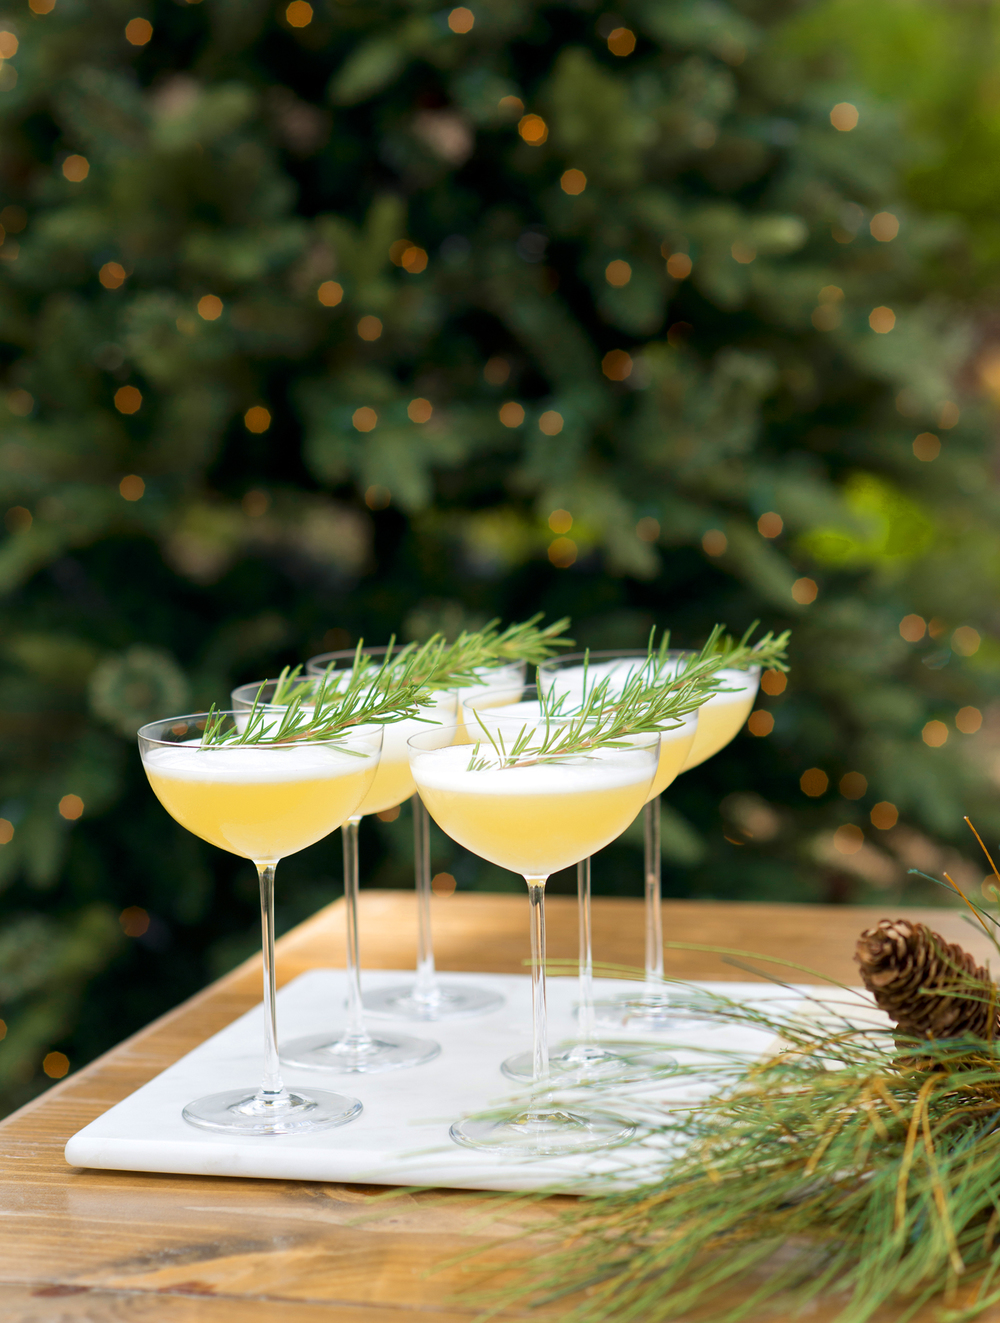 The Christmas Lady Cocktail Recipe - My Splendid Living's Christmas with Crate & Barrel